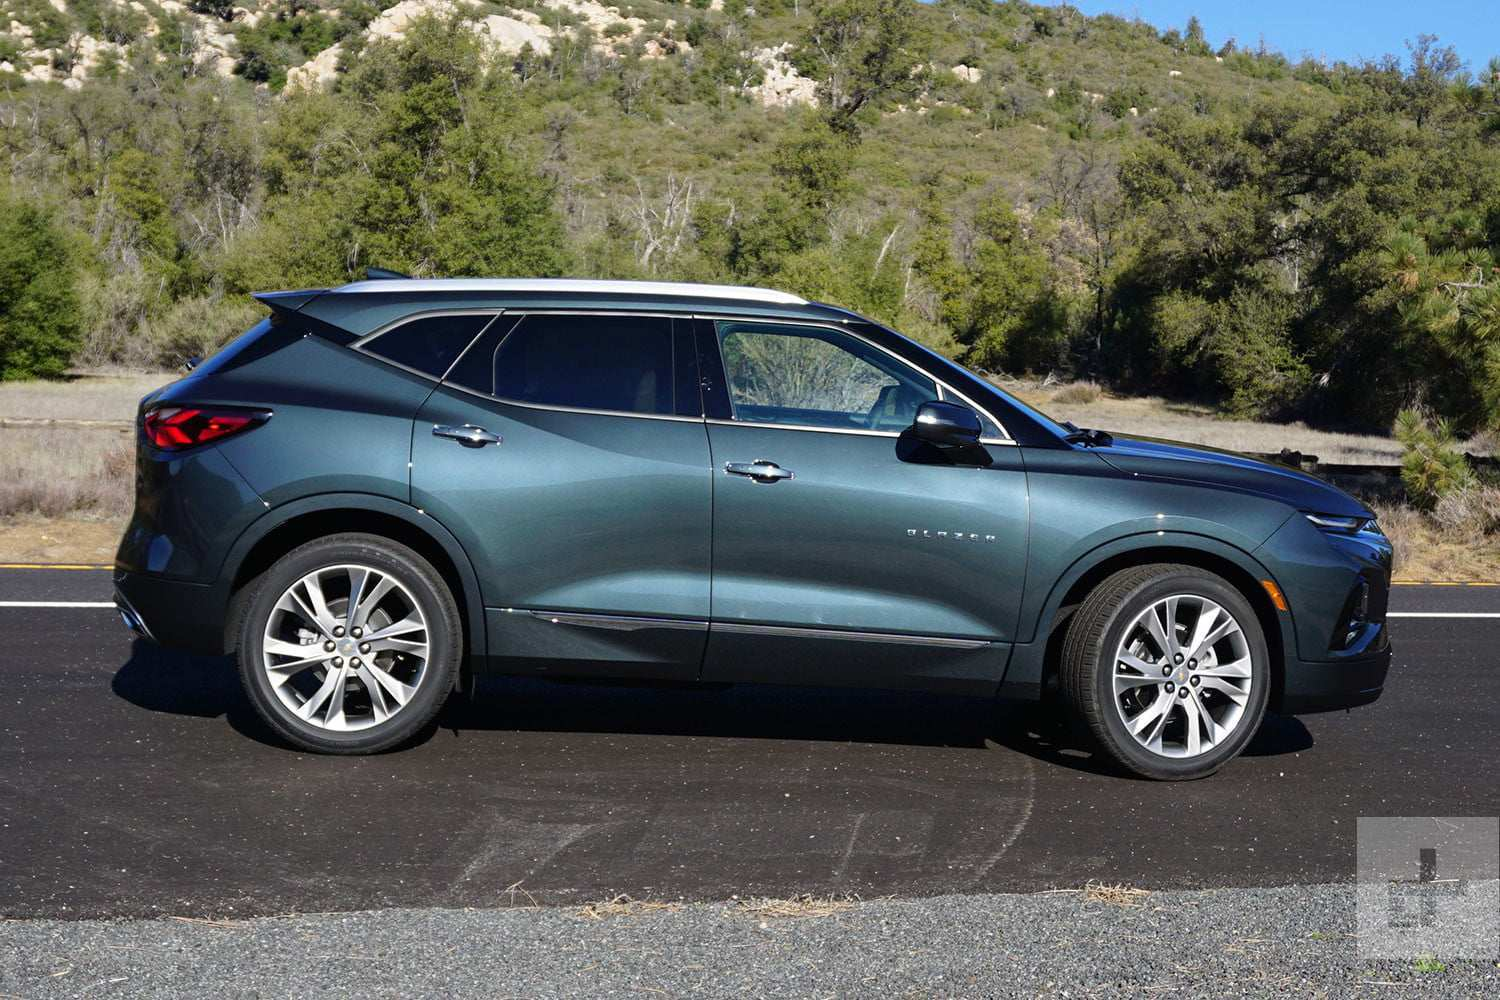 20 The Best 2019 Chevy K5 Blazer Images